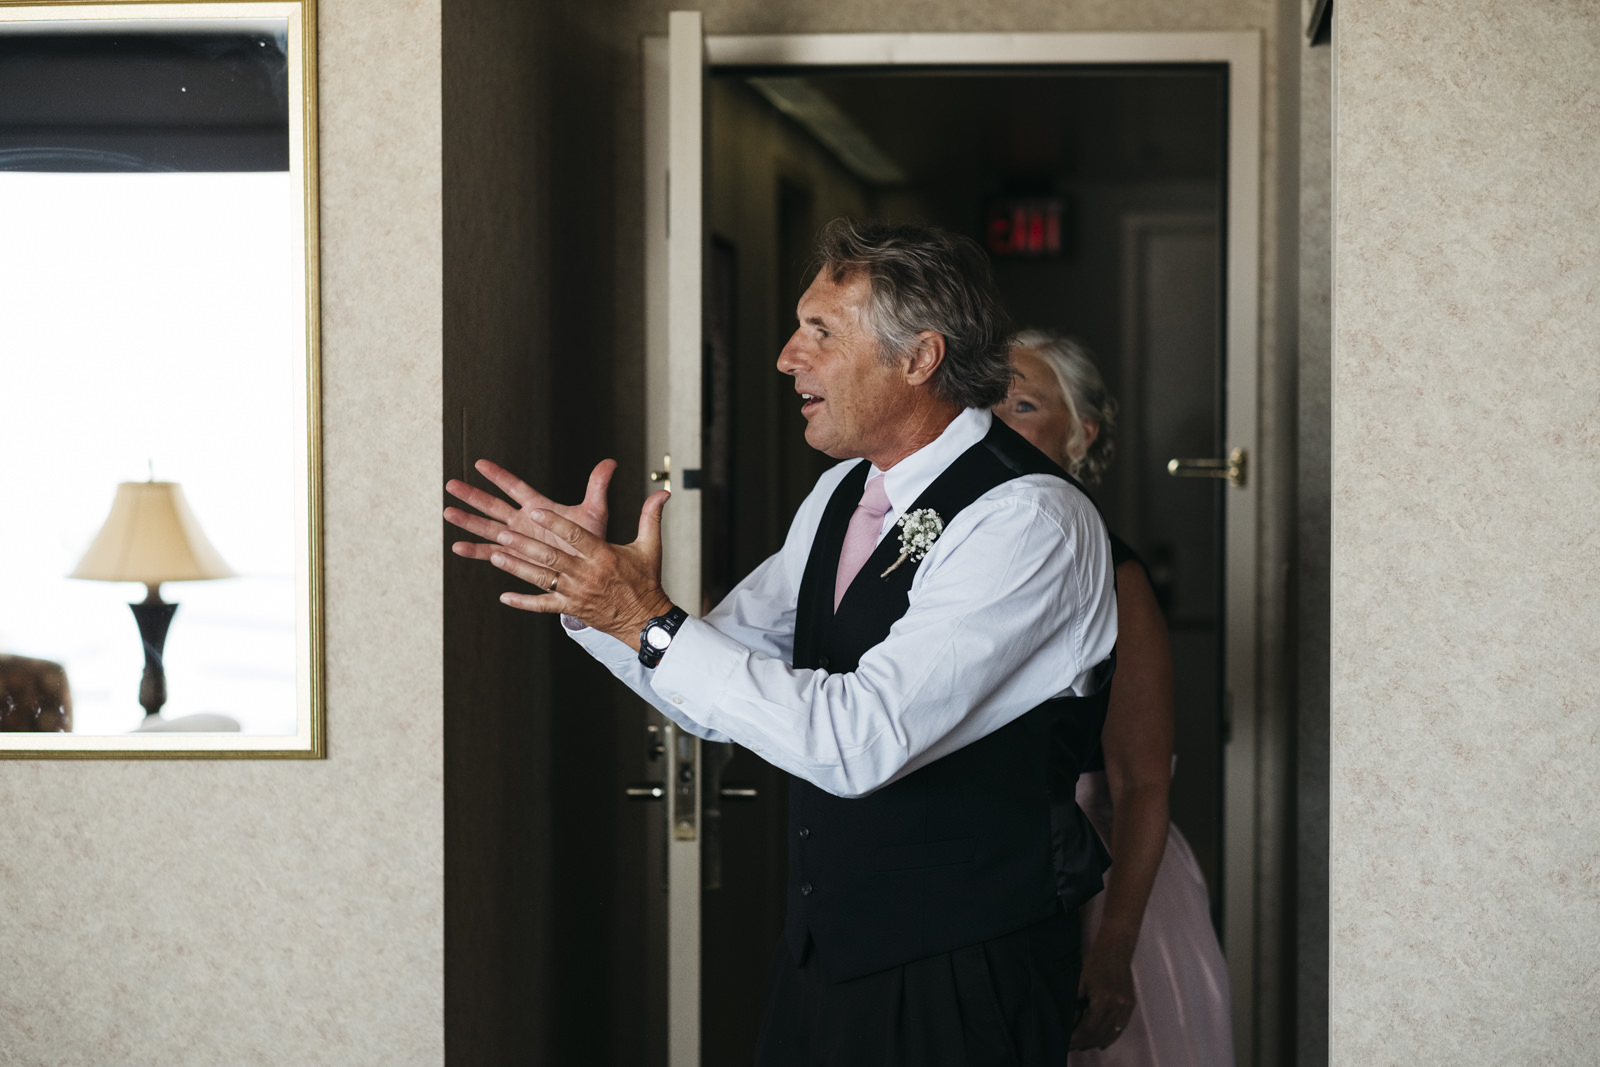 Dad sees daughter for the first time on her wedding day.